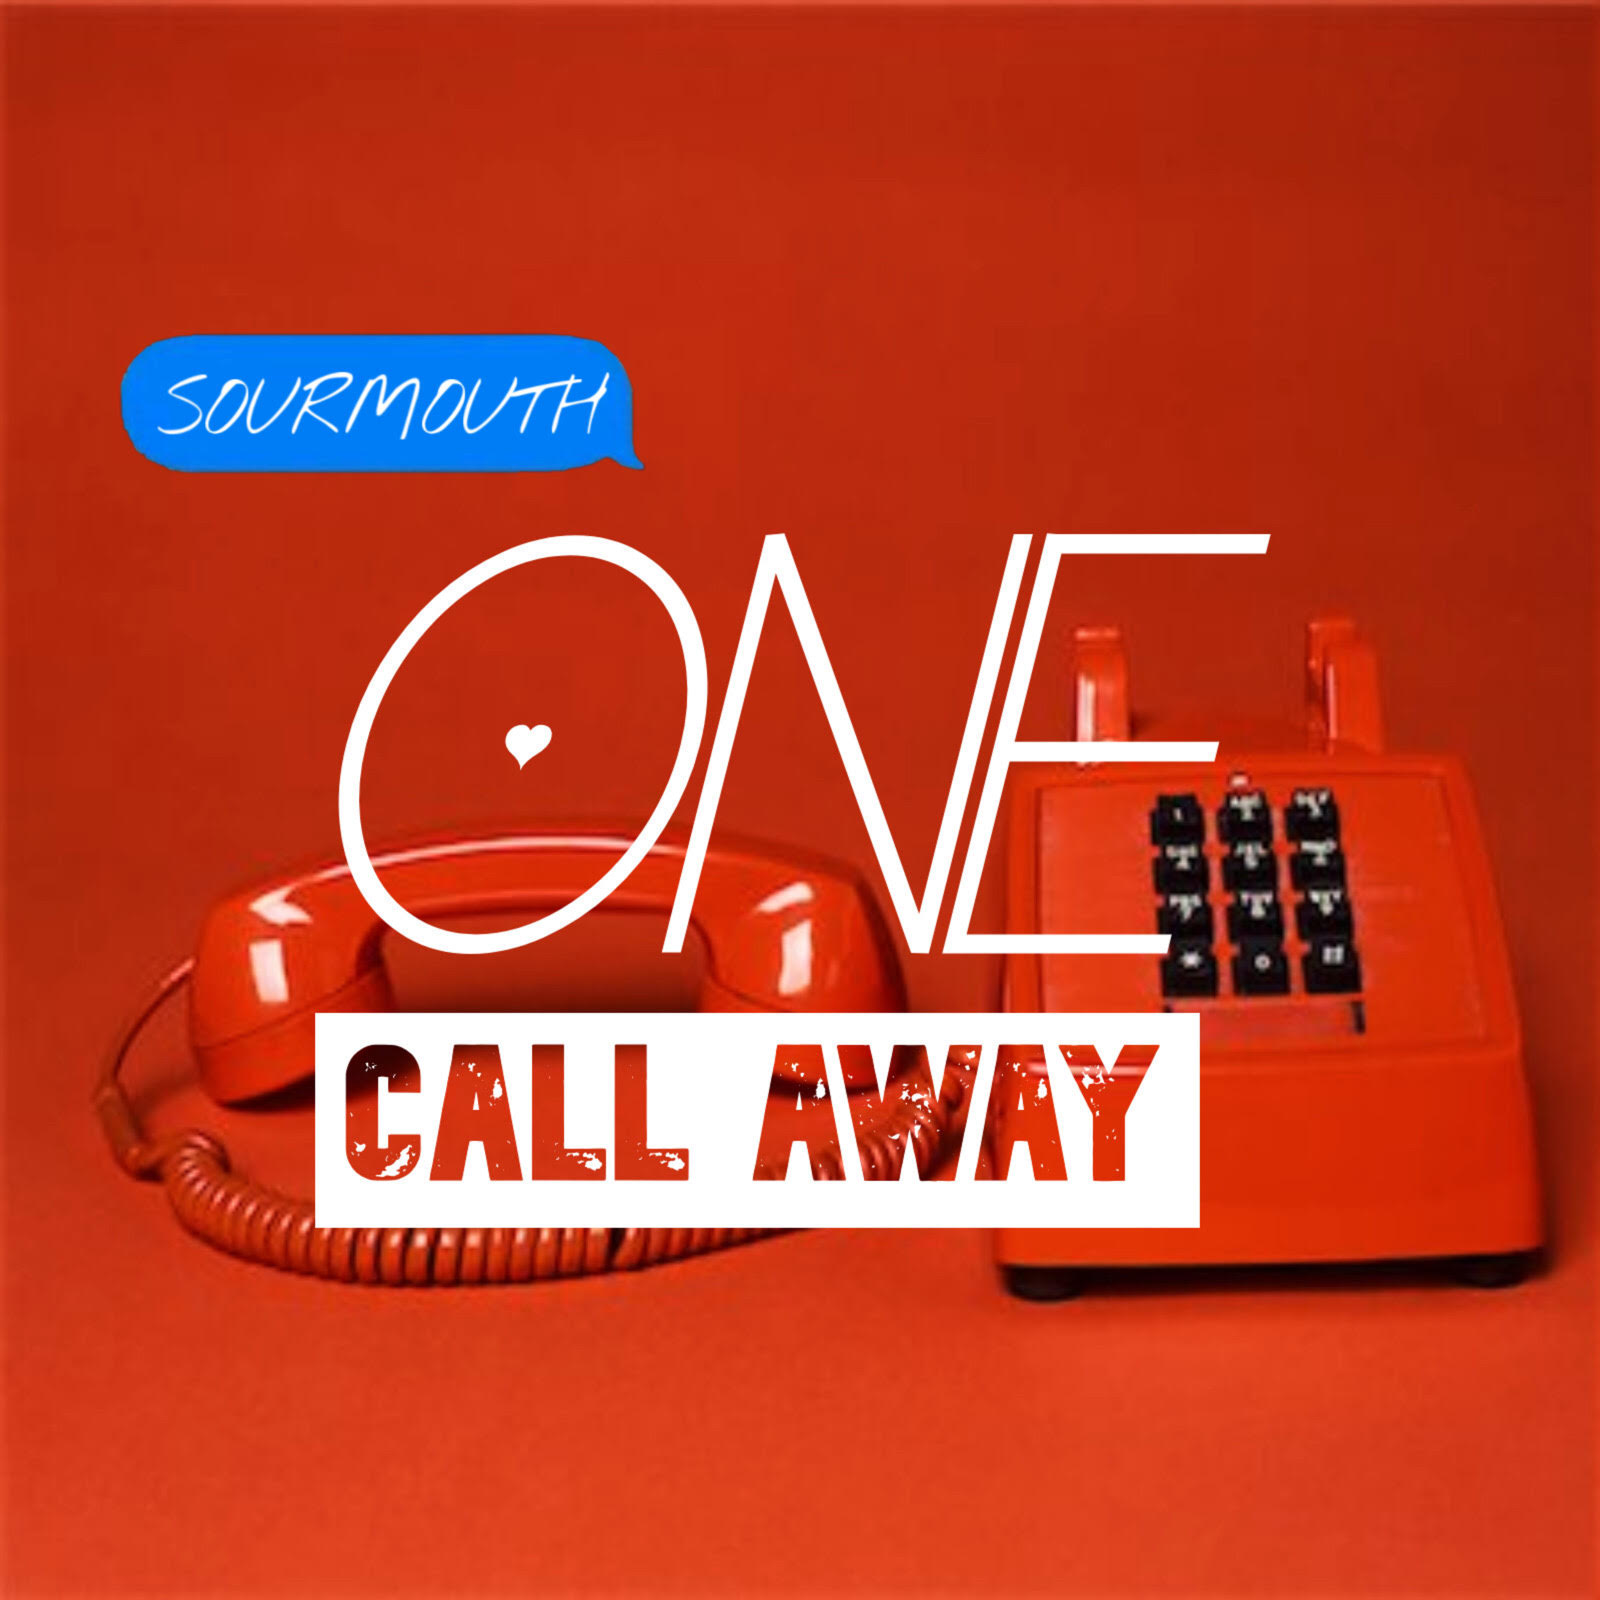 Sourmouth – One Call Away (Video)